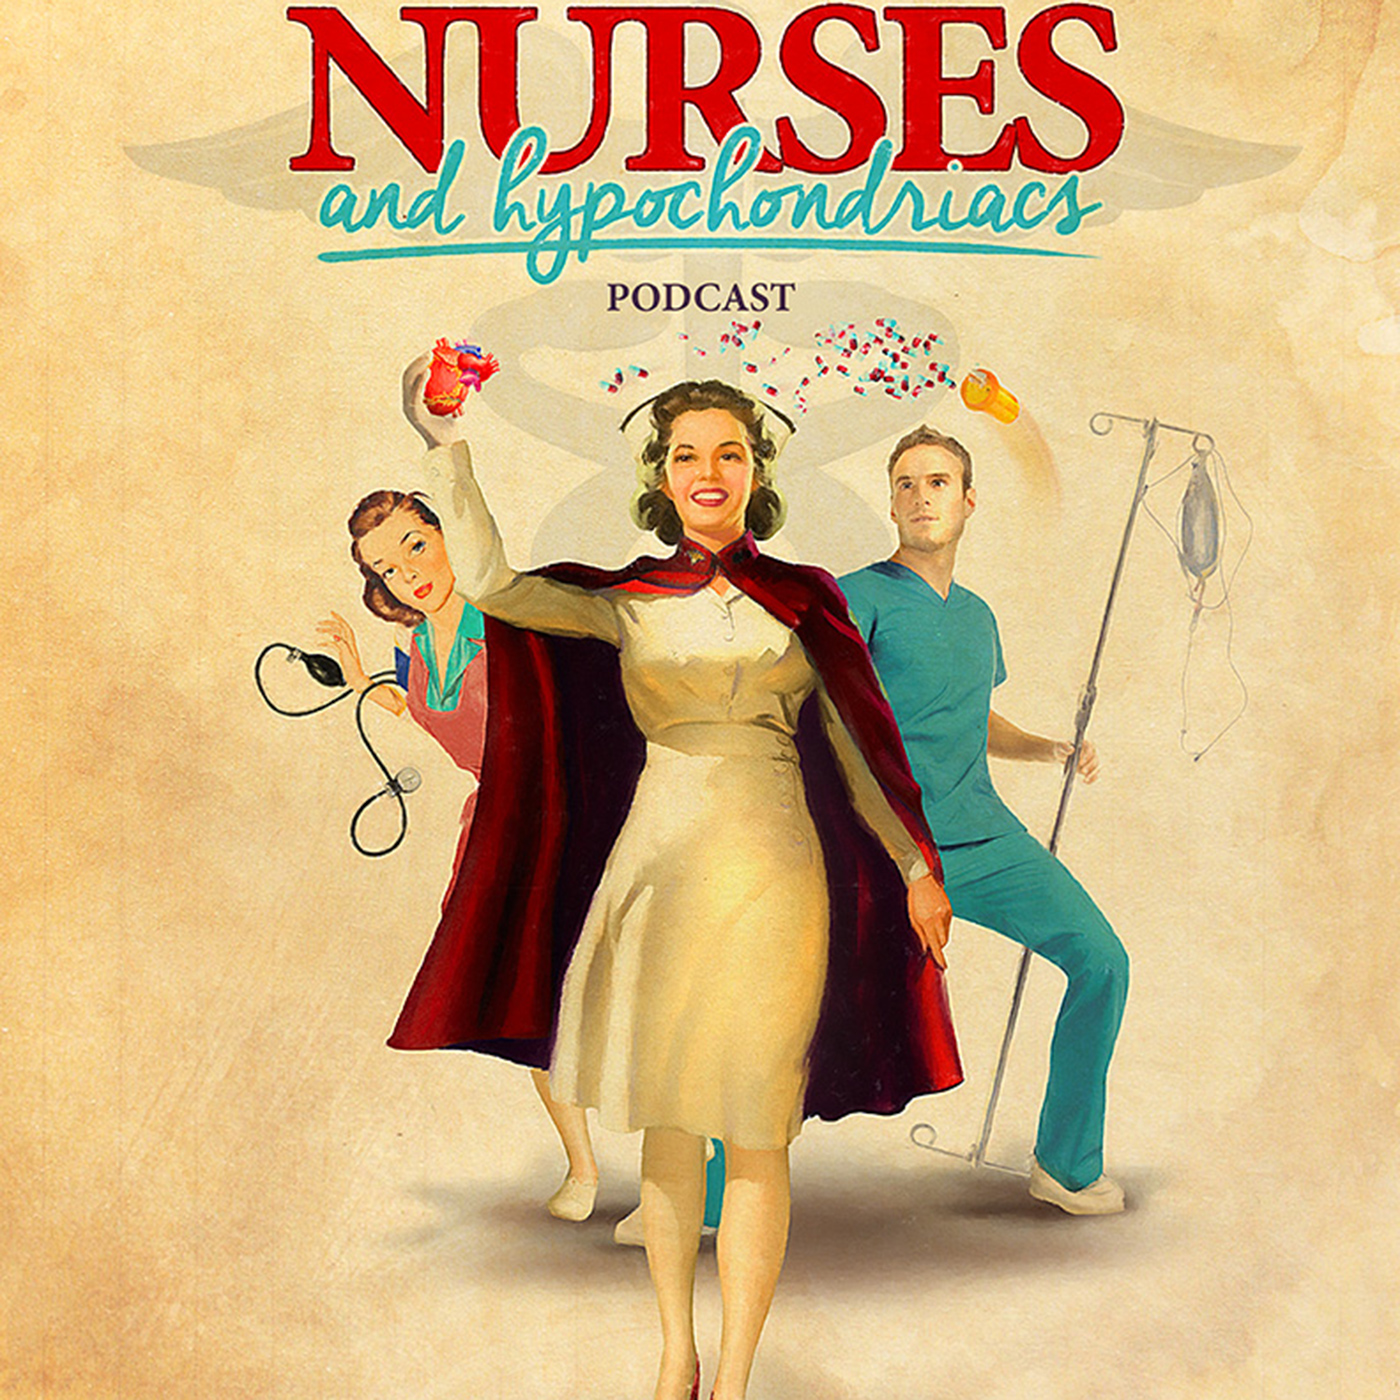 The Nurses and Hypochondriacs Podcast